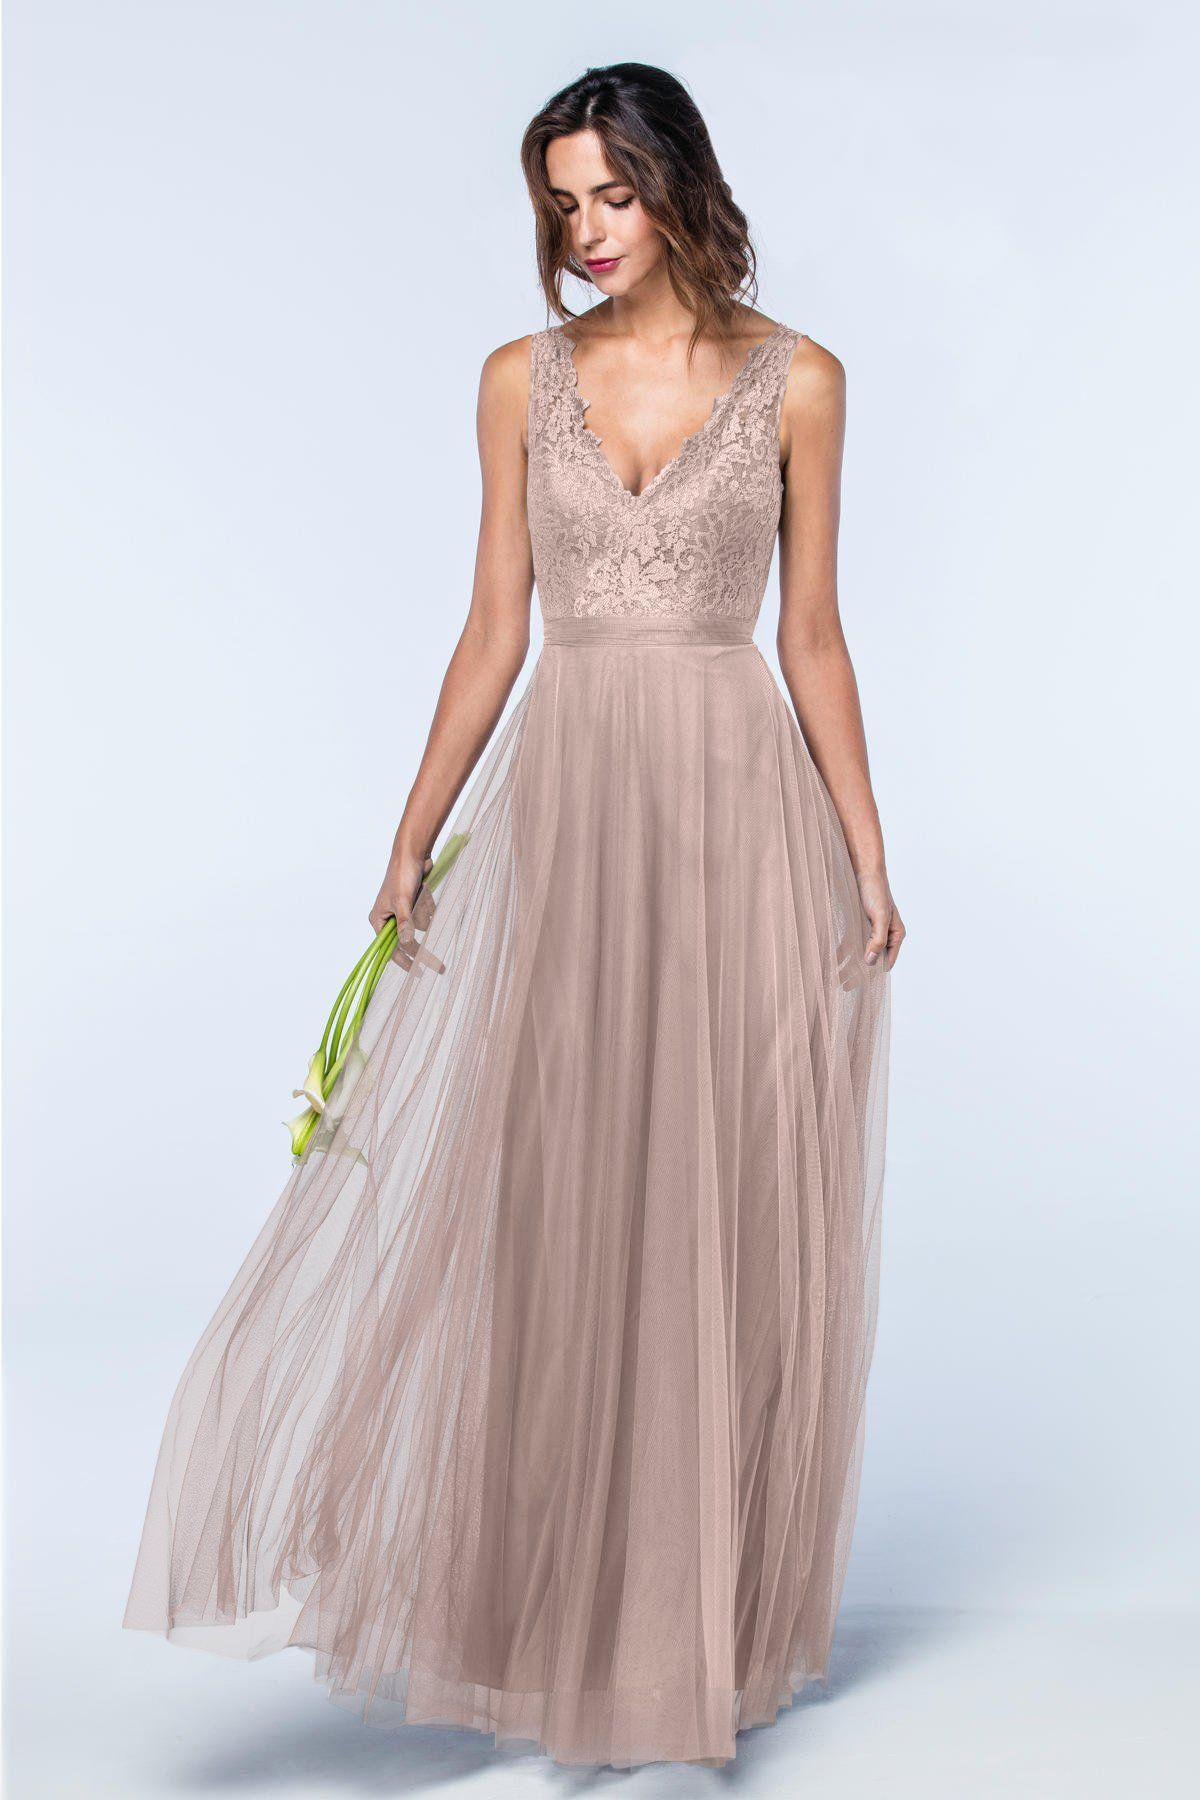 Desiree 2600 bridesmaids watters erre wedding pinterest watters 2600 is the desiree style bridesmaid dress where aria lace and bobbinet combine to create this romantic beauty a v neck lace bodice sits above a ombrellifo Choice Image